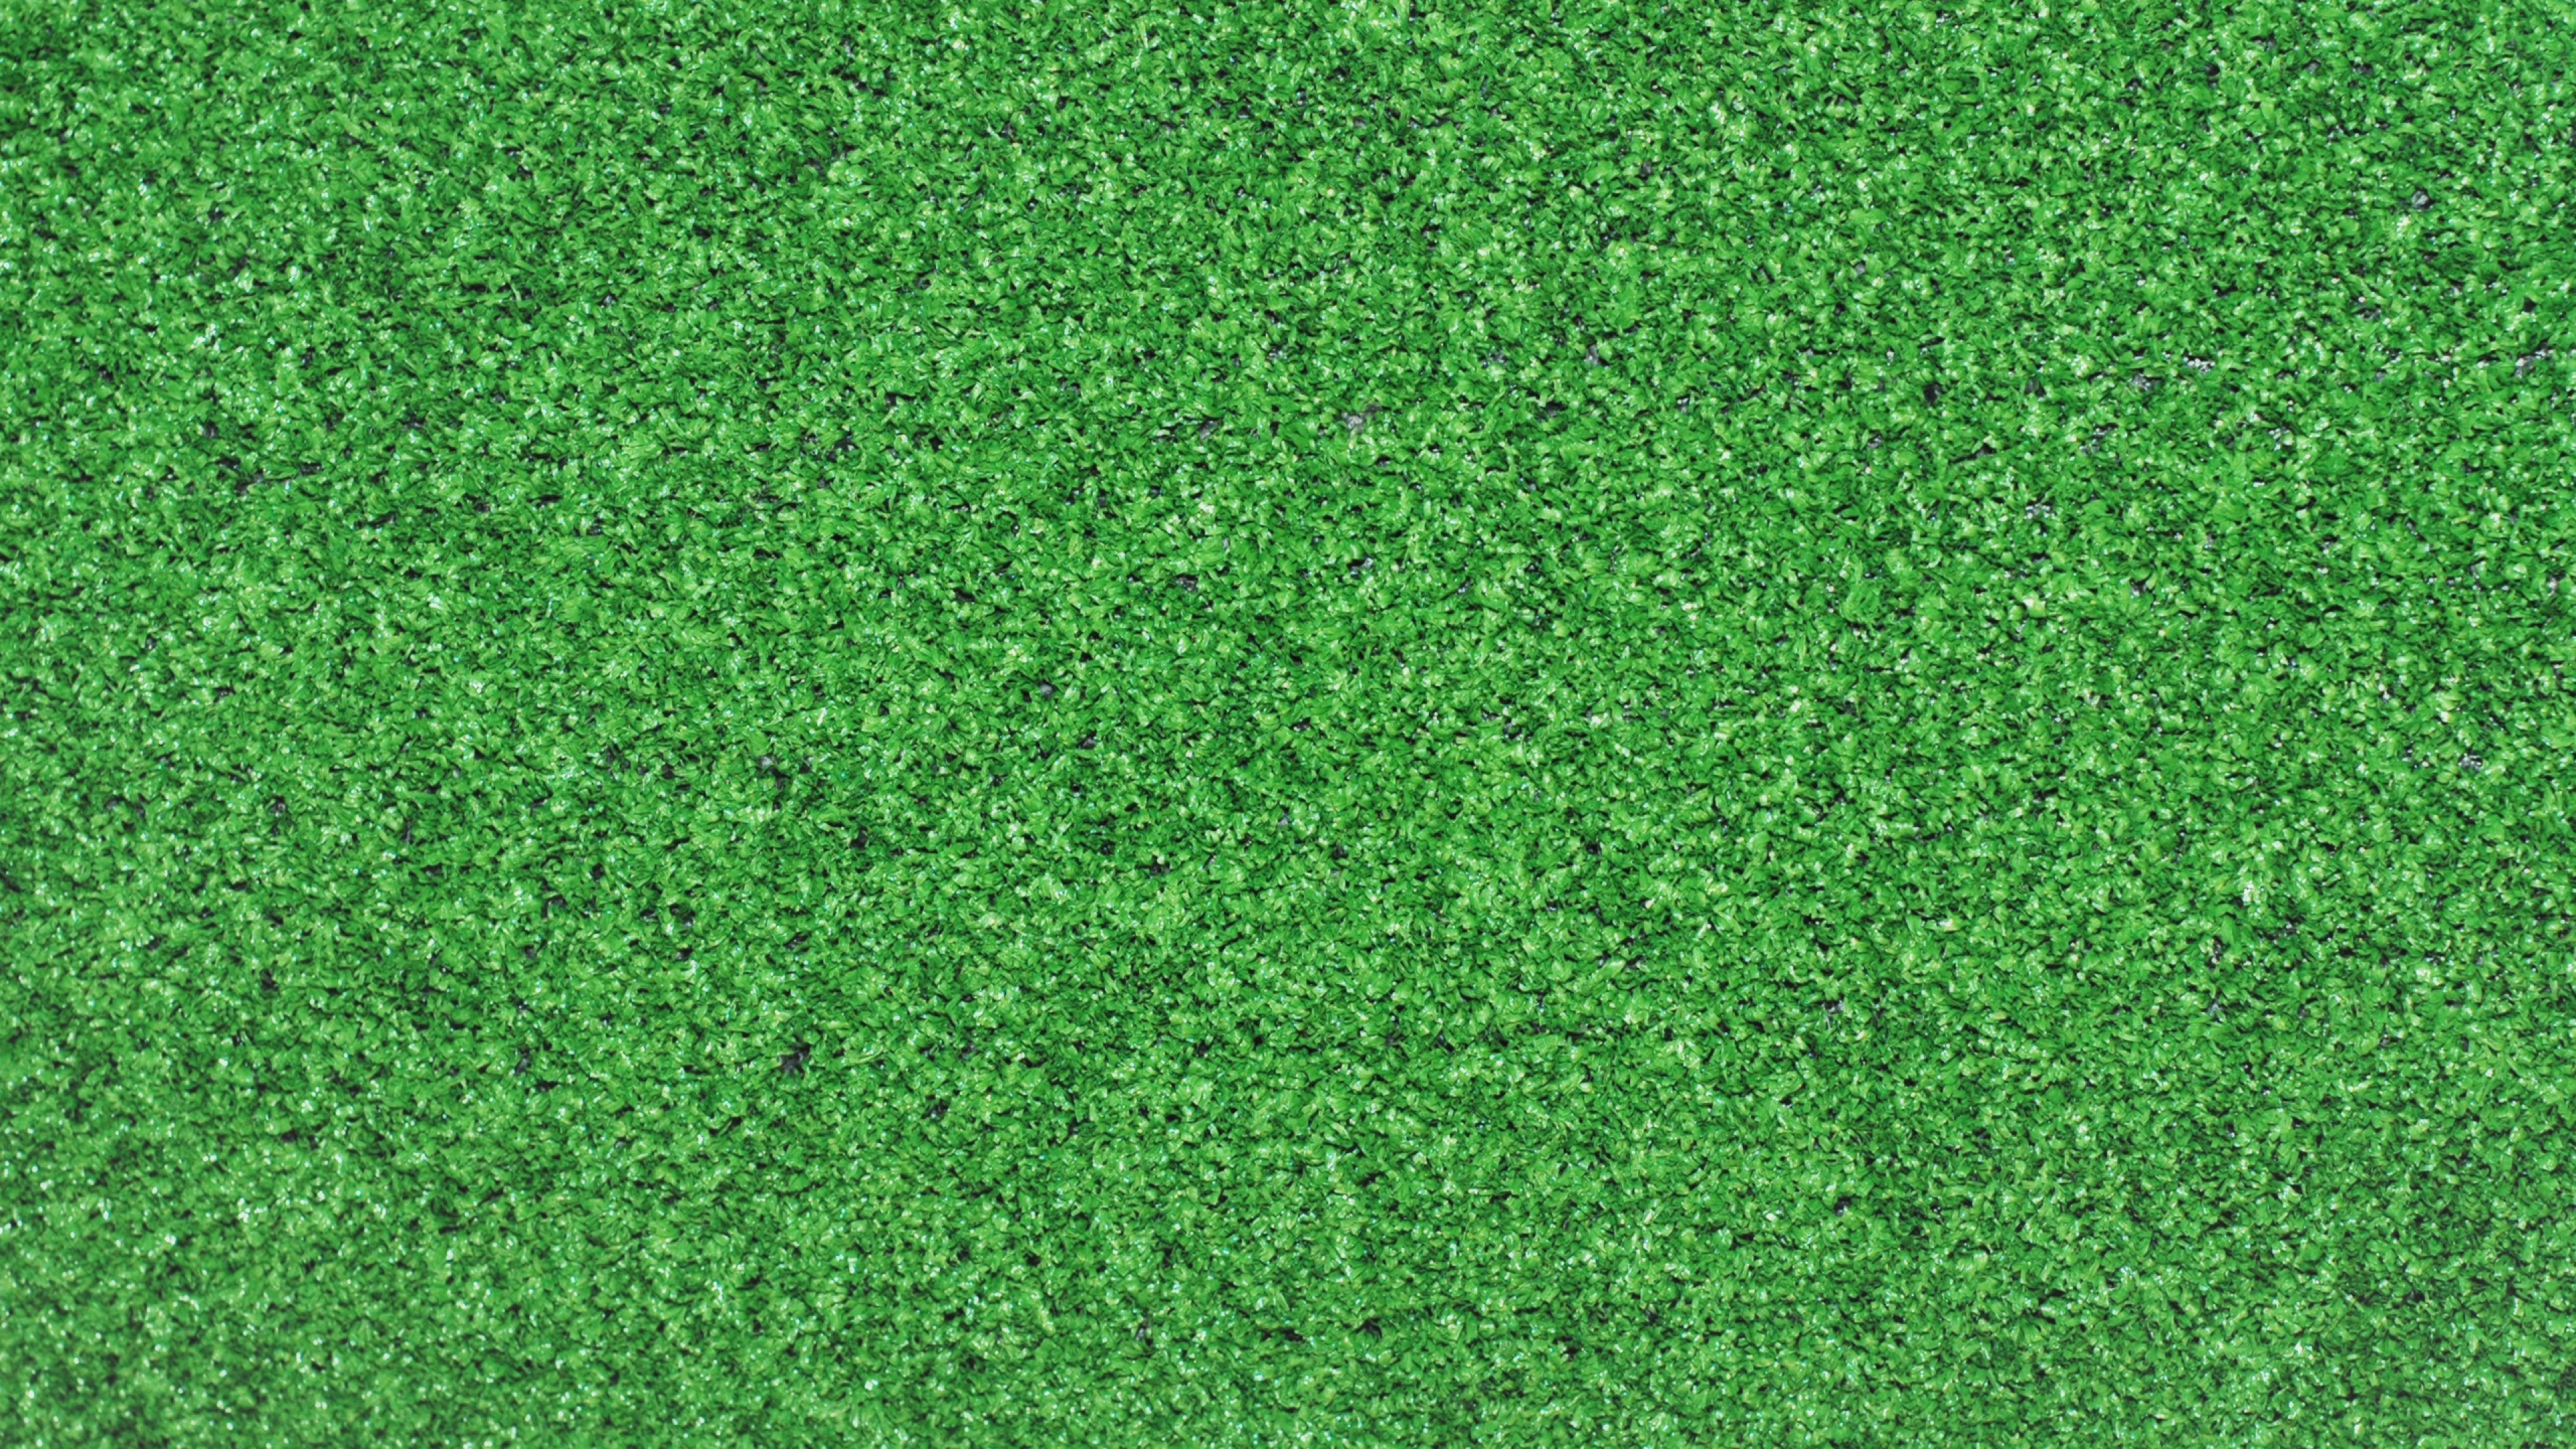 4k wallpaper grass wallpapersafari for Light green carpet texture